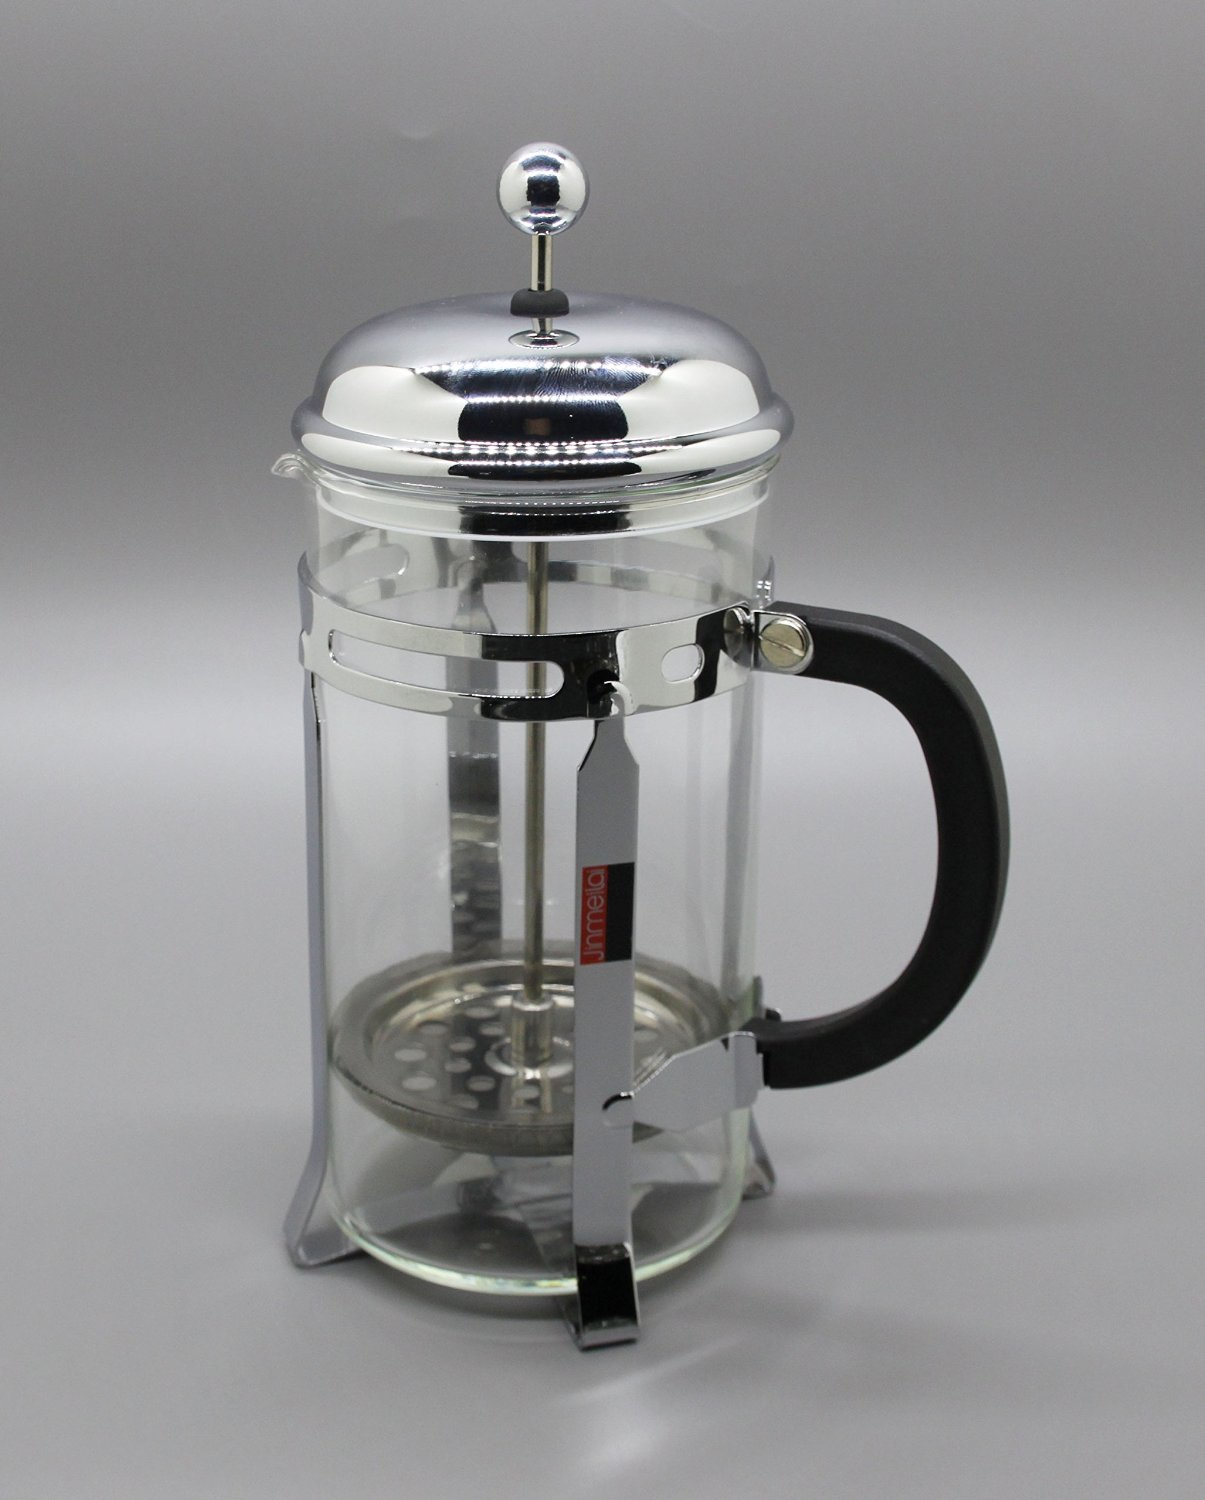 FixtureDisplays Set of 3 French Coffee Press - 8 Cup/4 Mug (1 liter, 34 oz), Chrome 15915-COFFEE PRESS